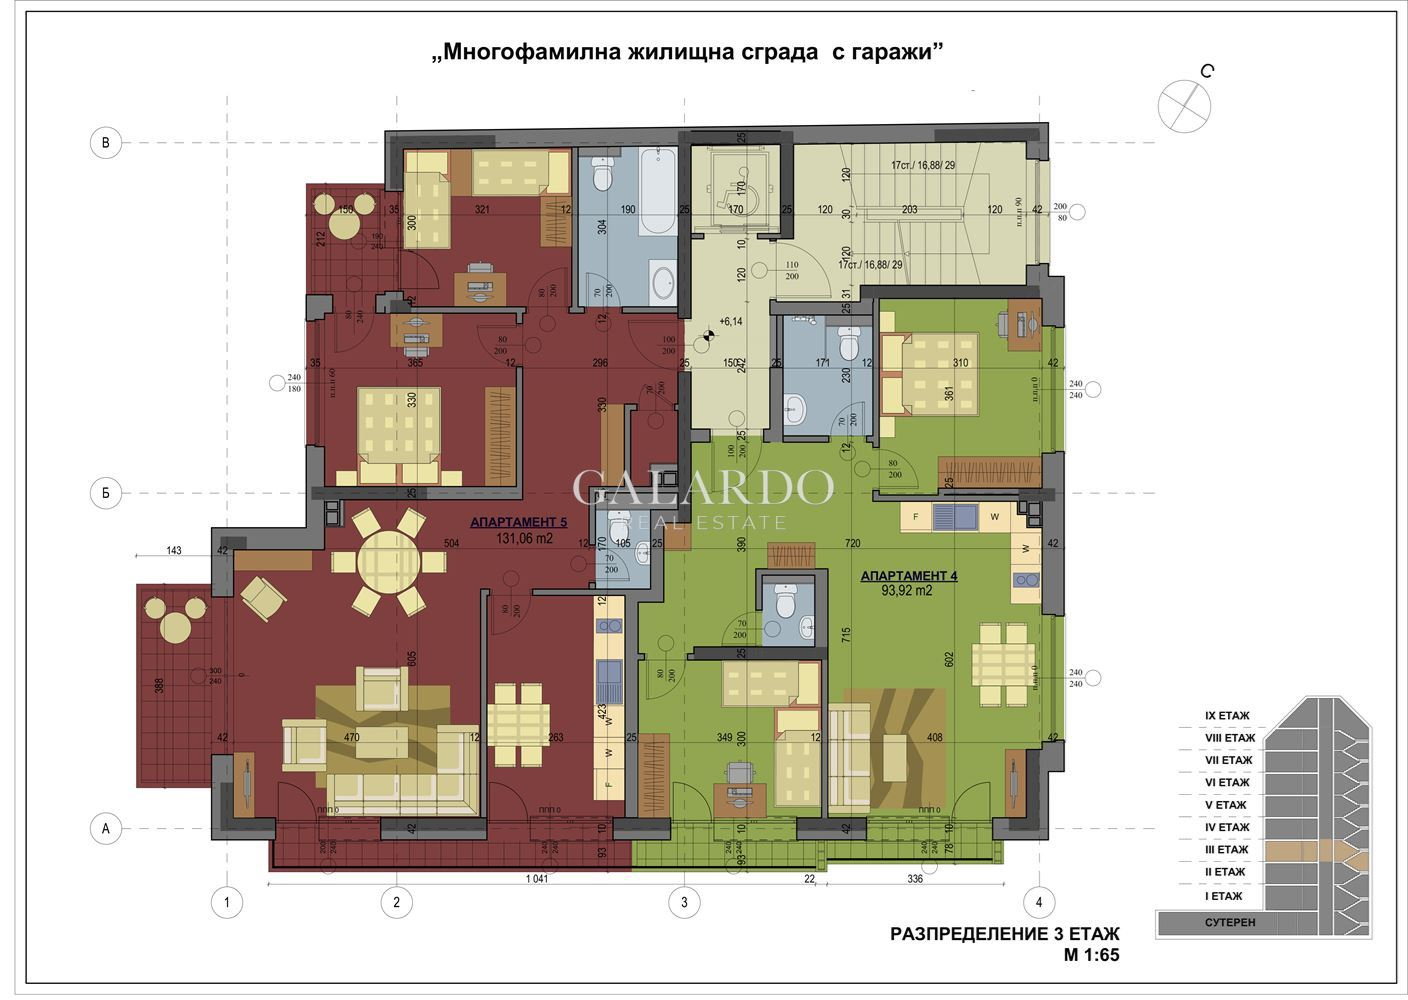 2 Bedrooms in Sofia city center